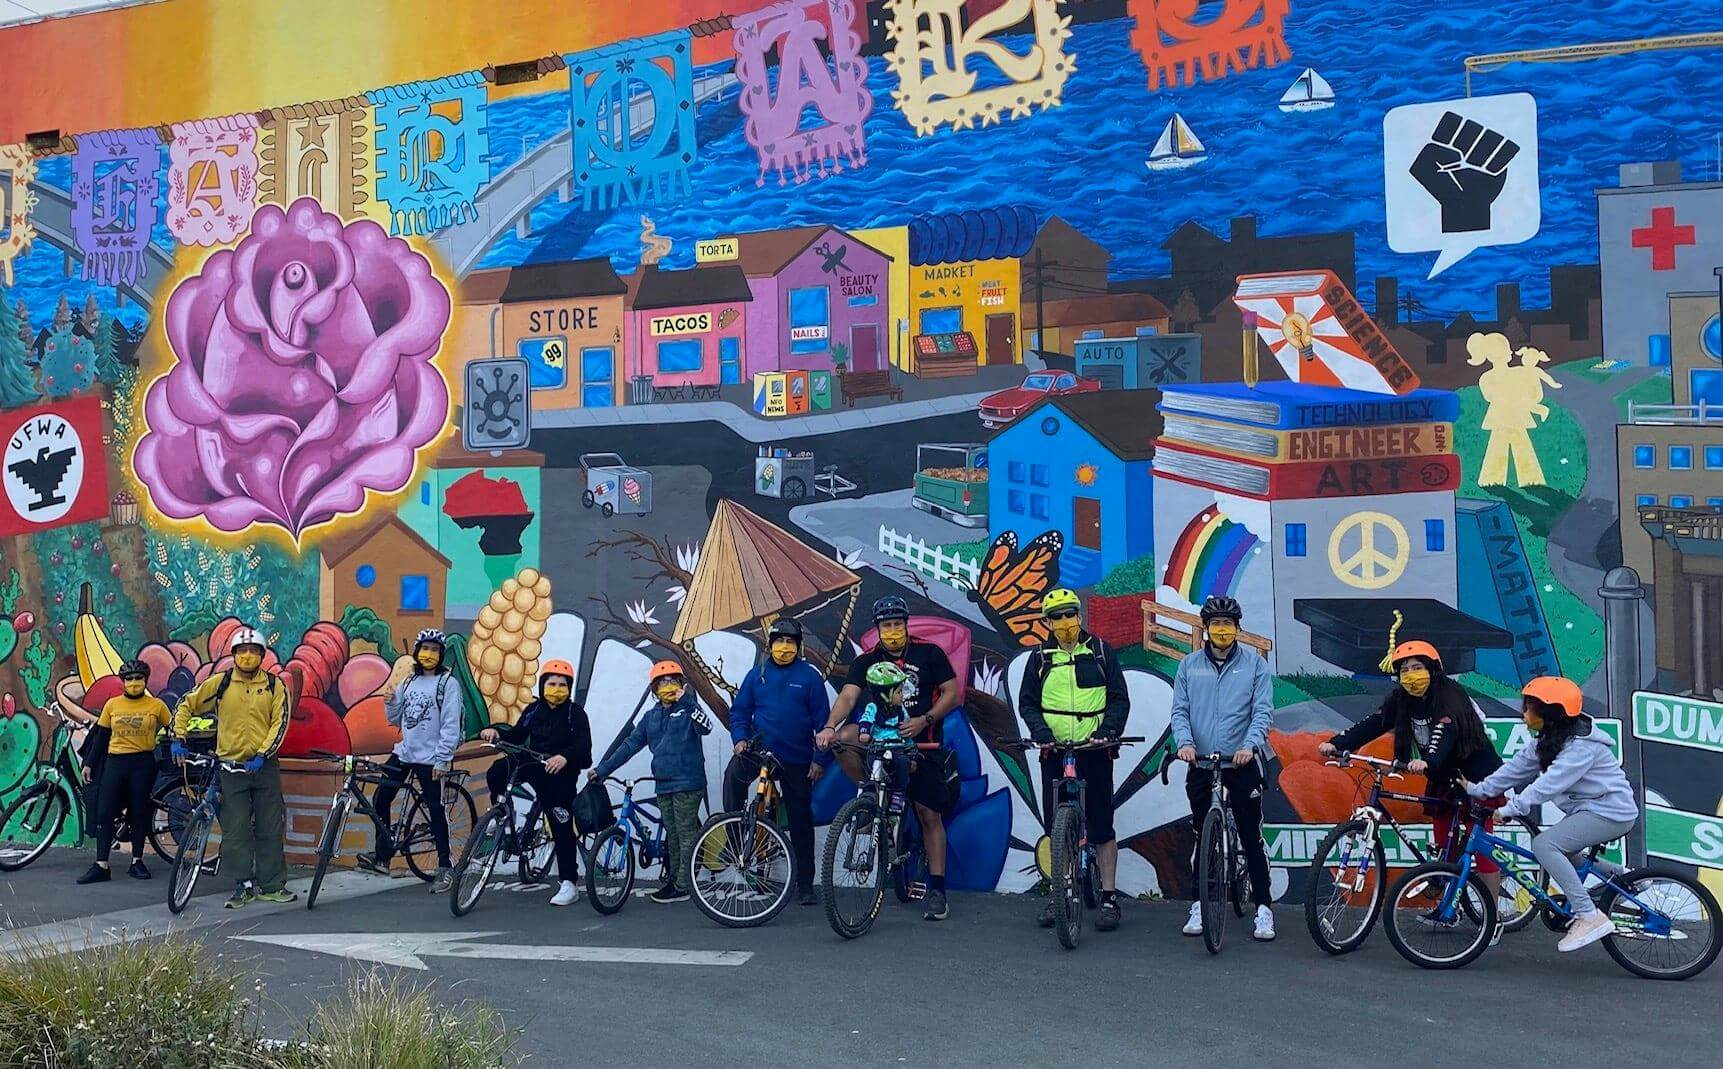 A group of community member sit on their bikes in front of a colorful mural.